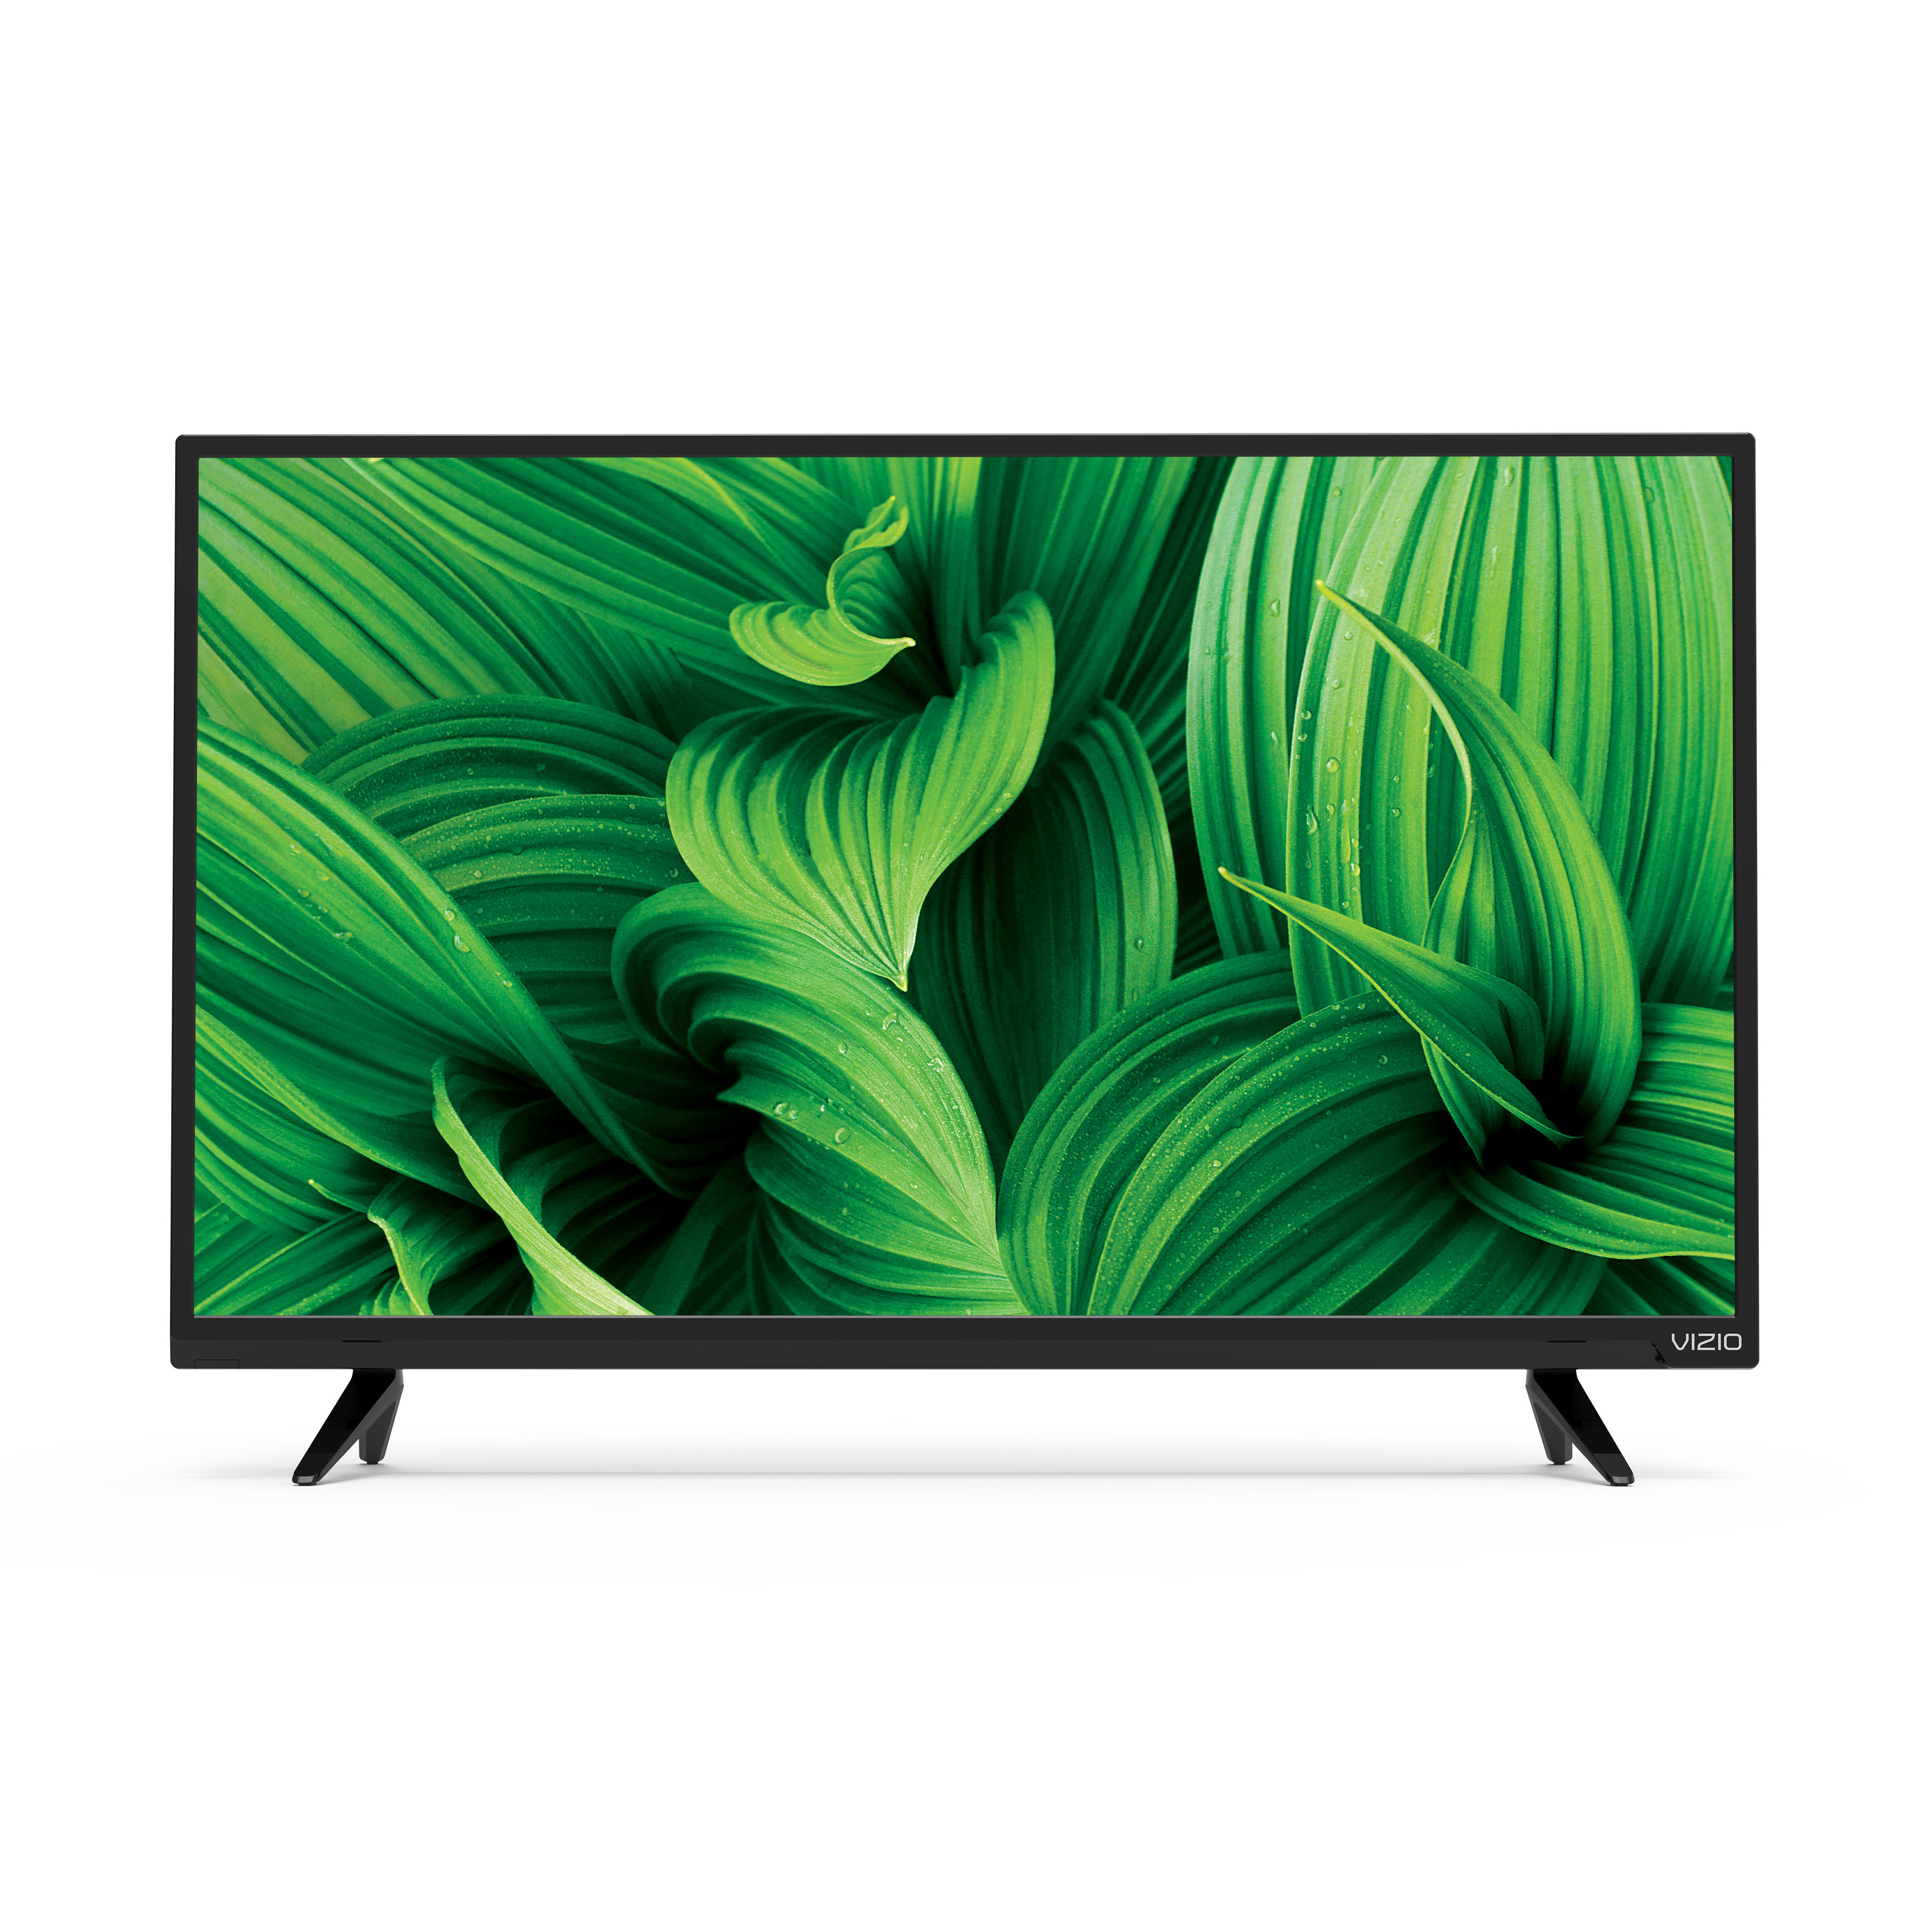 "VIZIO 32"" Class HD (720P) LED TV (D32hn-E4)"